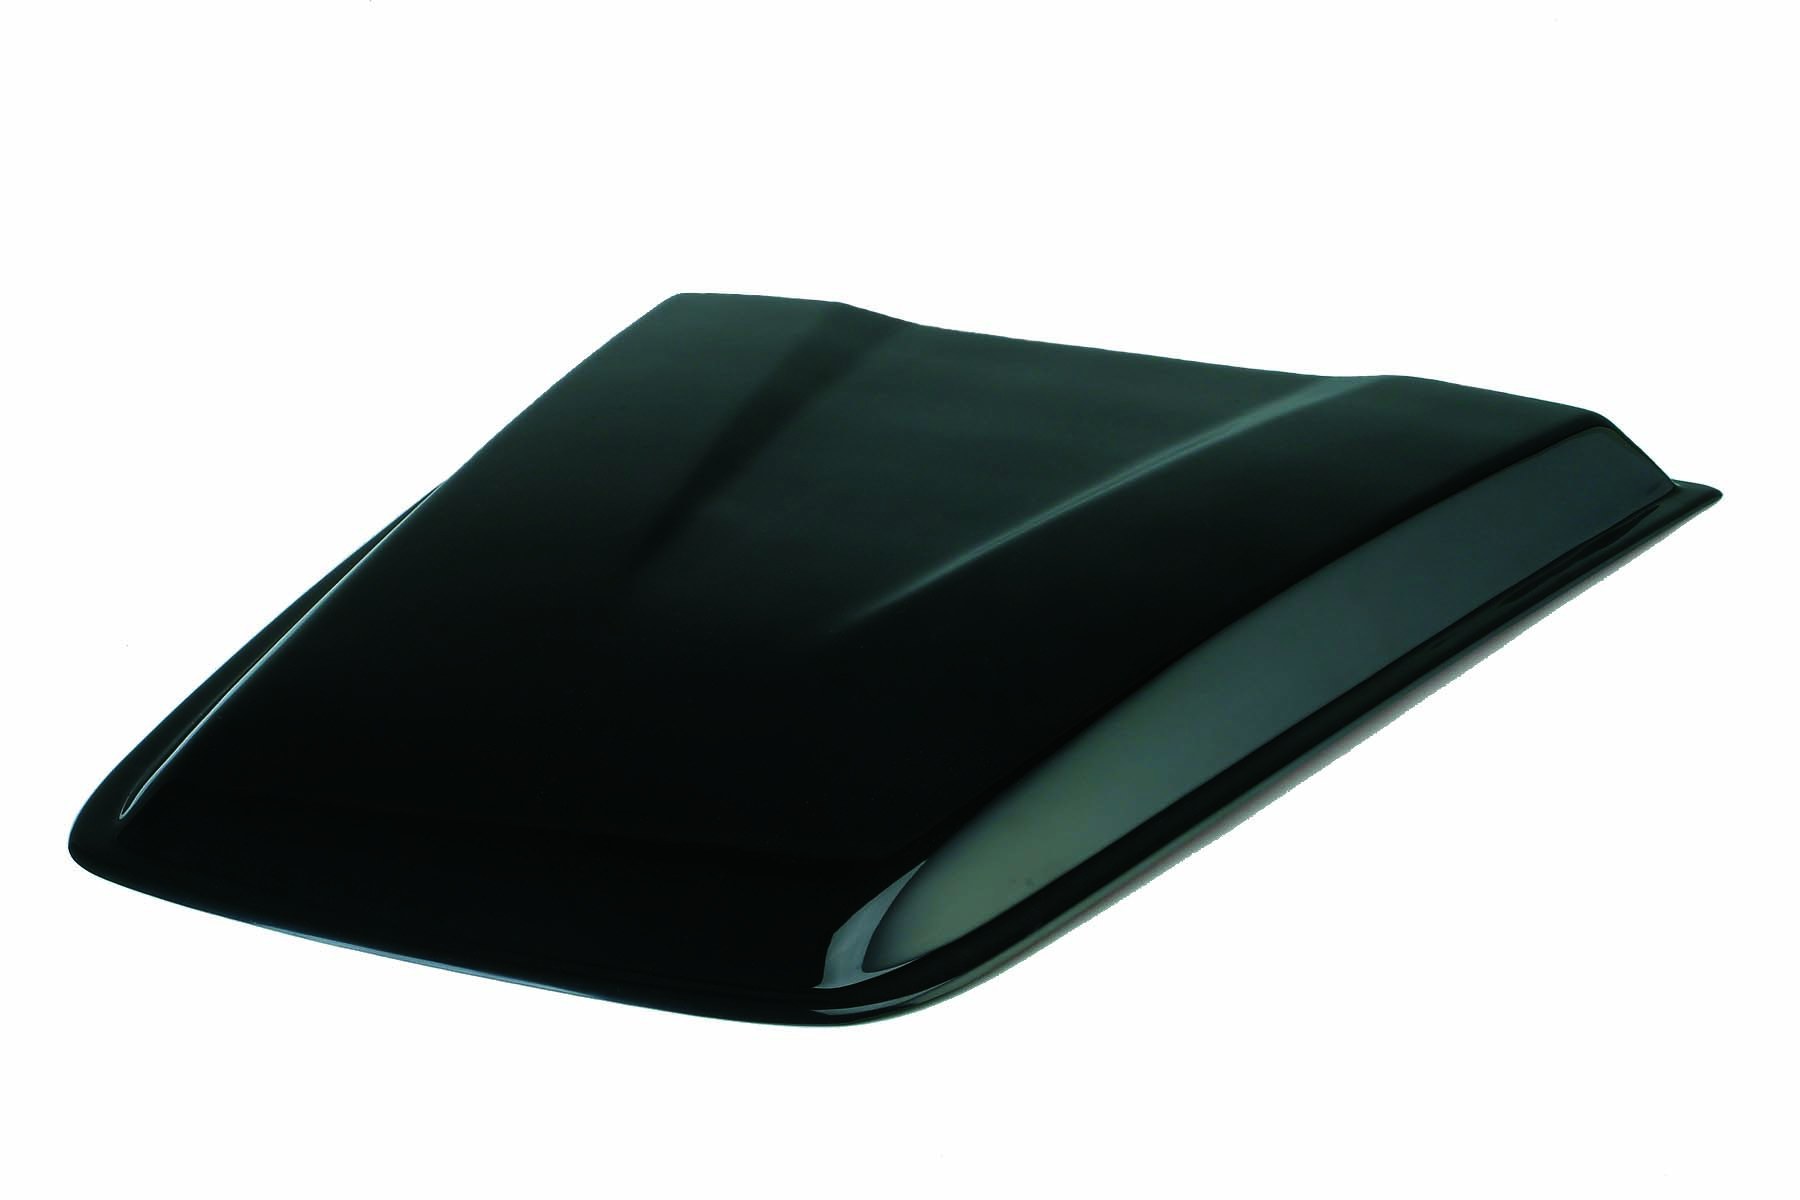 Gmc Sierra 2001-2010 Hd Truck Cowl Induction Hood Scoop